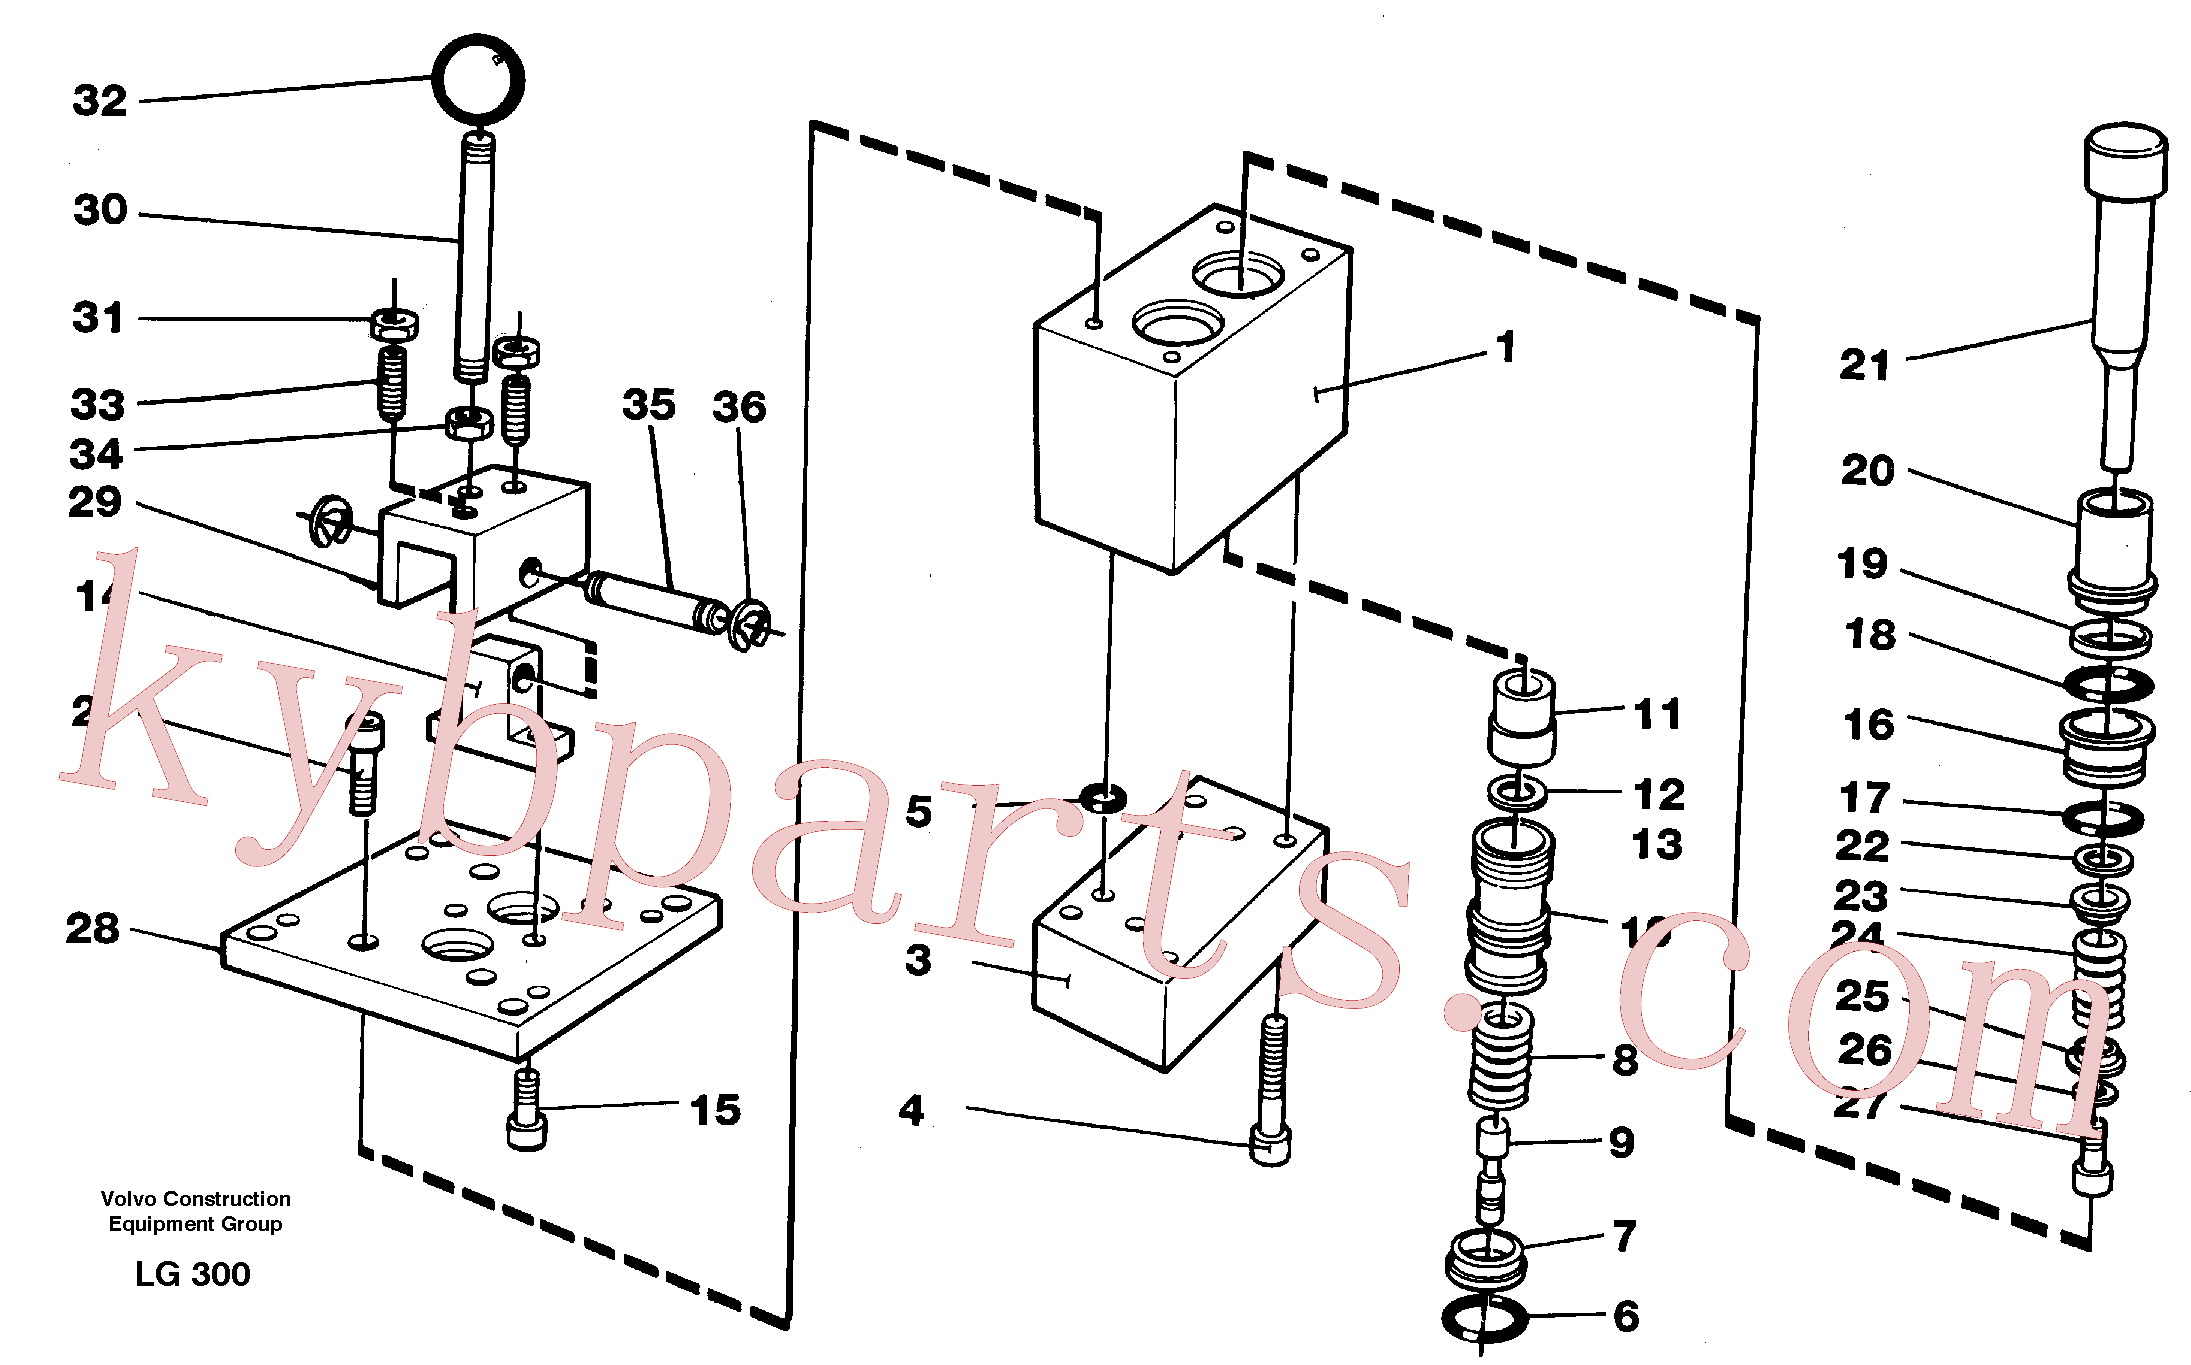 VOE14244421 for Volvo Control pressure valve(LG300 assembly)